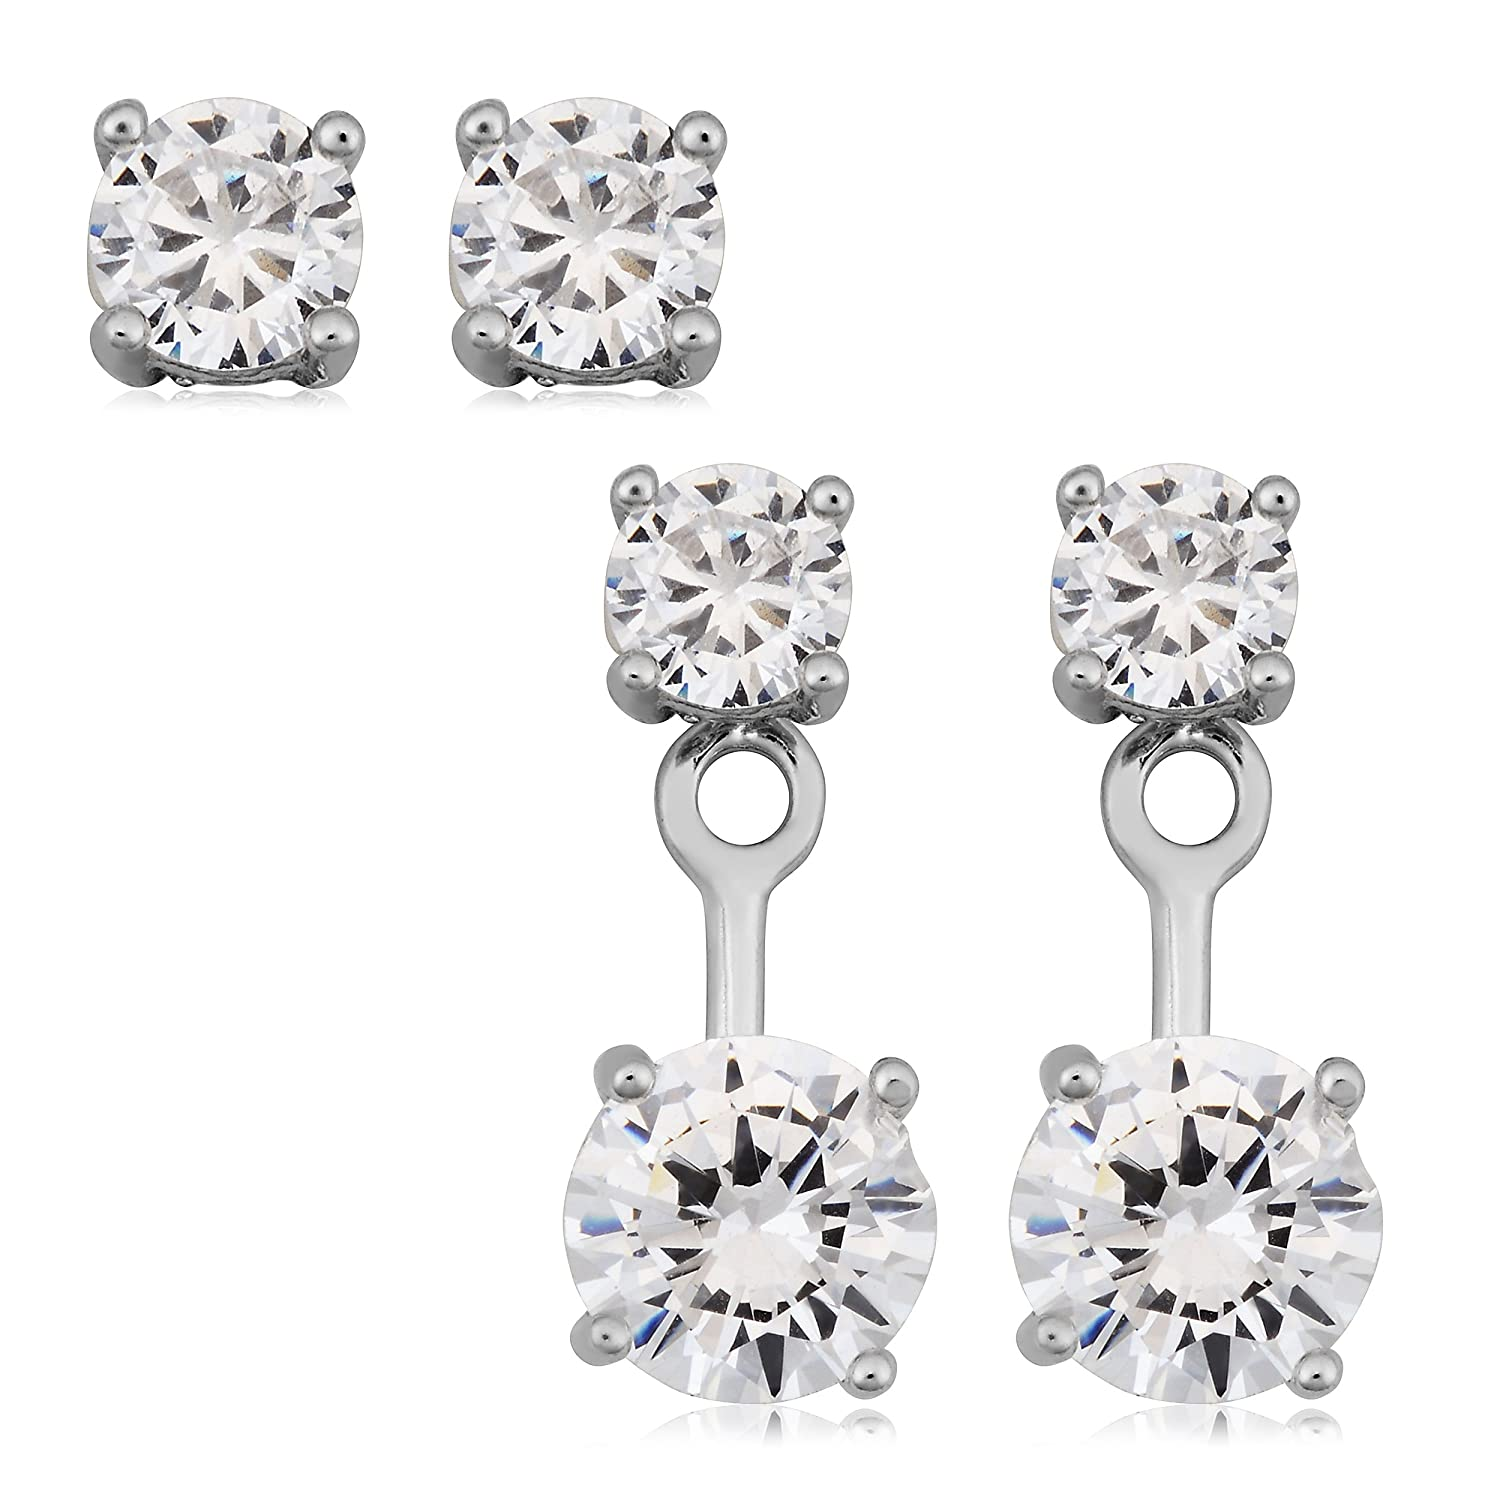 Sterling Silver Front Back 2 in 1 With Cubic Zirconia Stud And Ear Jacket Earrings Set Fremada SSEFB1CZRH